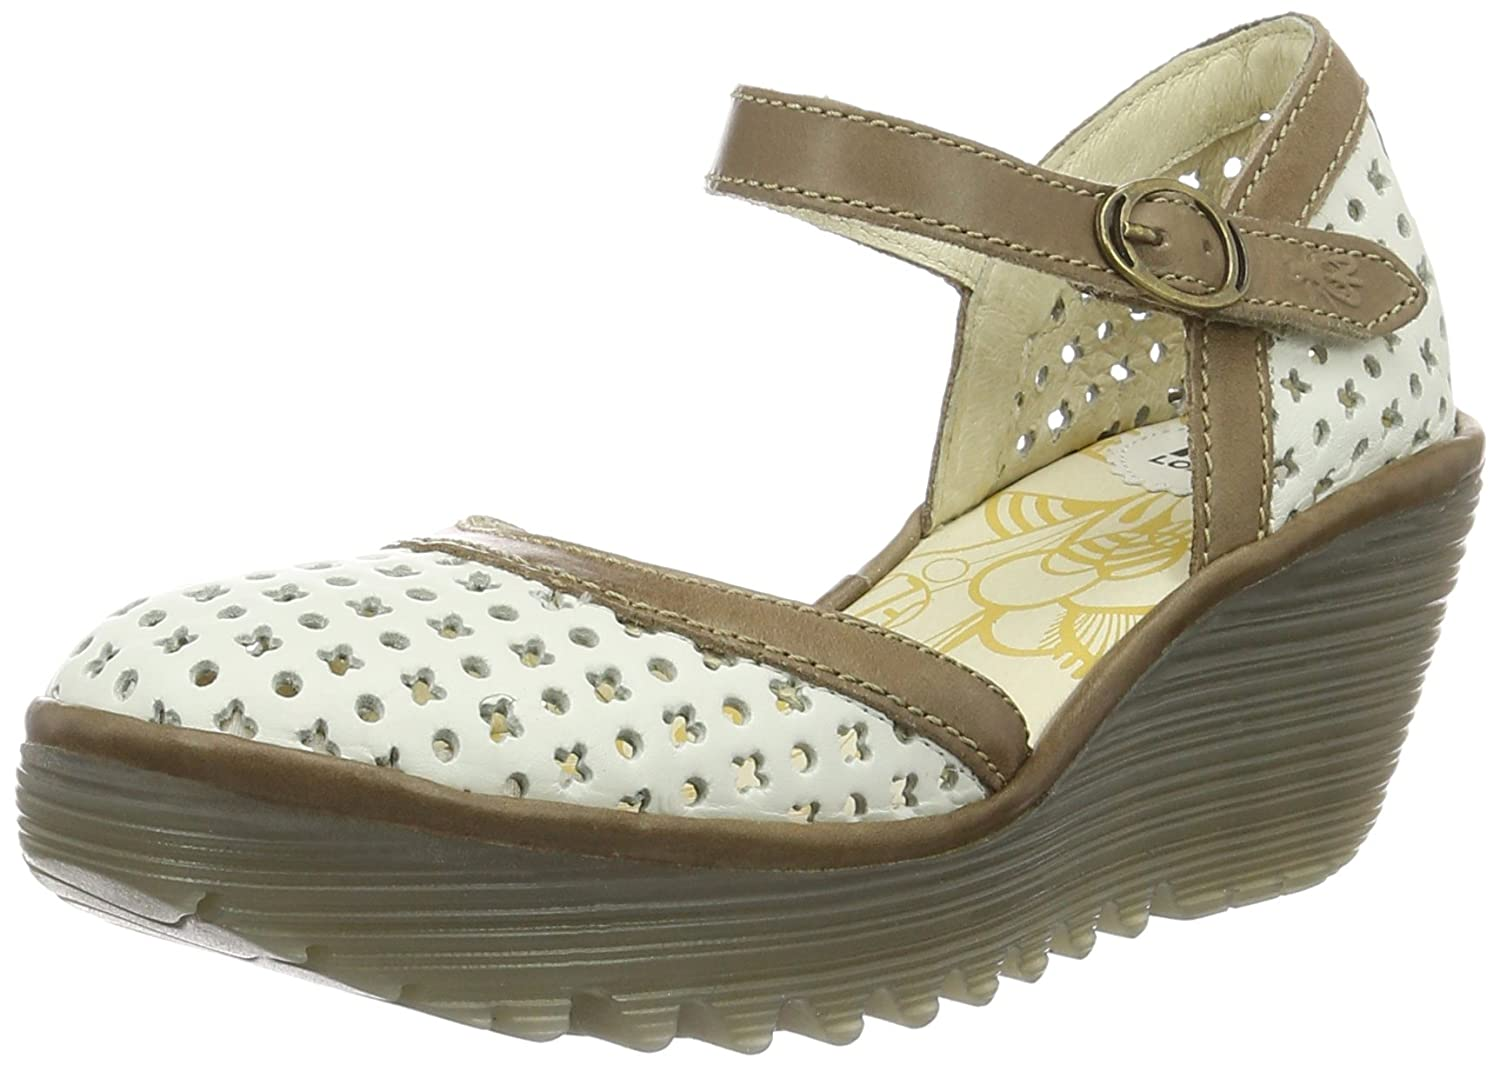 Fly London Womens Yadu732Fly Leather Sandals B01M04OF4N 40 M EU / 9-9.5 B(M) US|Off White / Grey